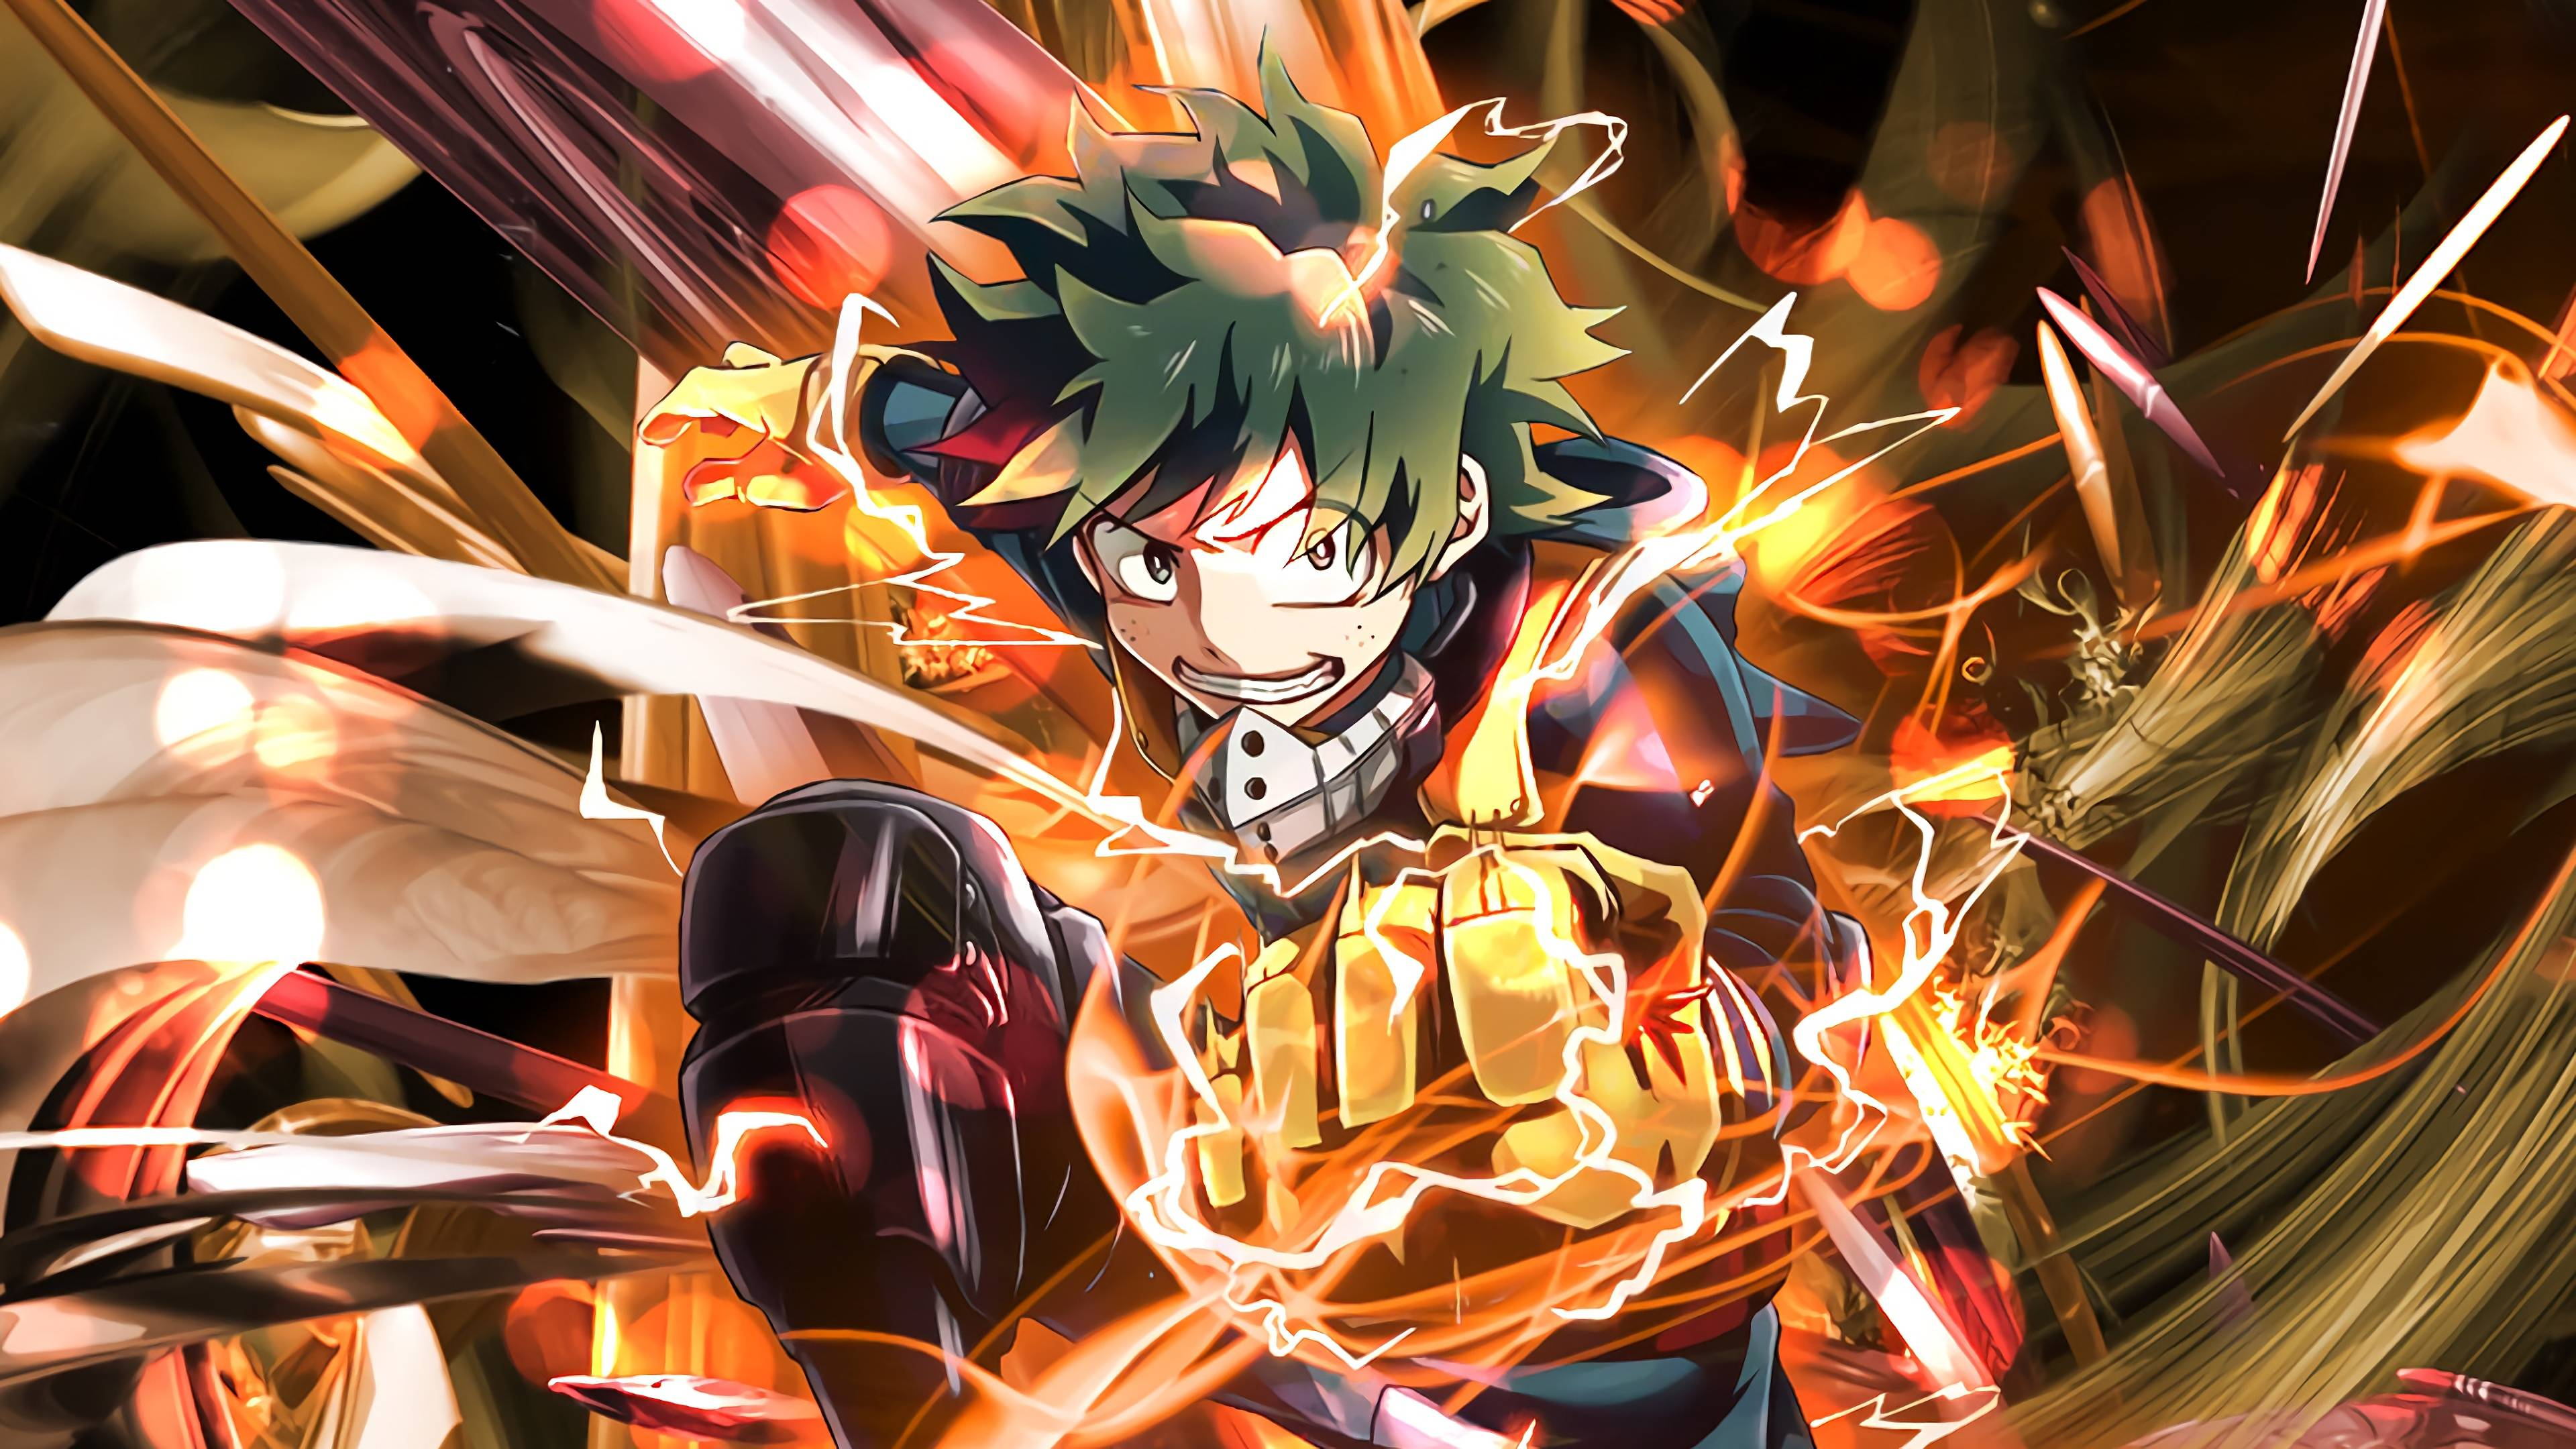 Download wallpapers from anime my hero academia for monitor with resolution 1024x768 and tags on page: Anime 4k My Hero Academia Wallpapers - Wallpaper Cave